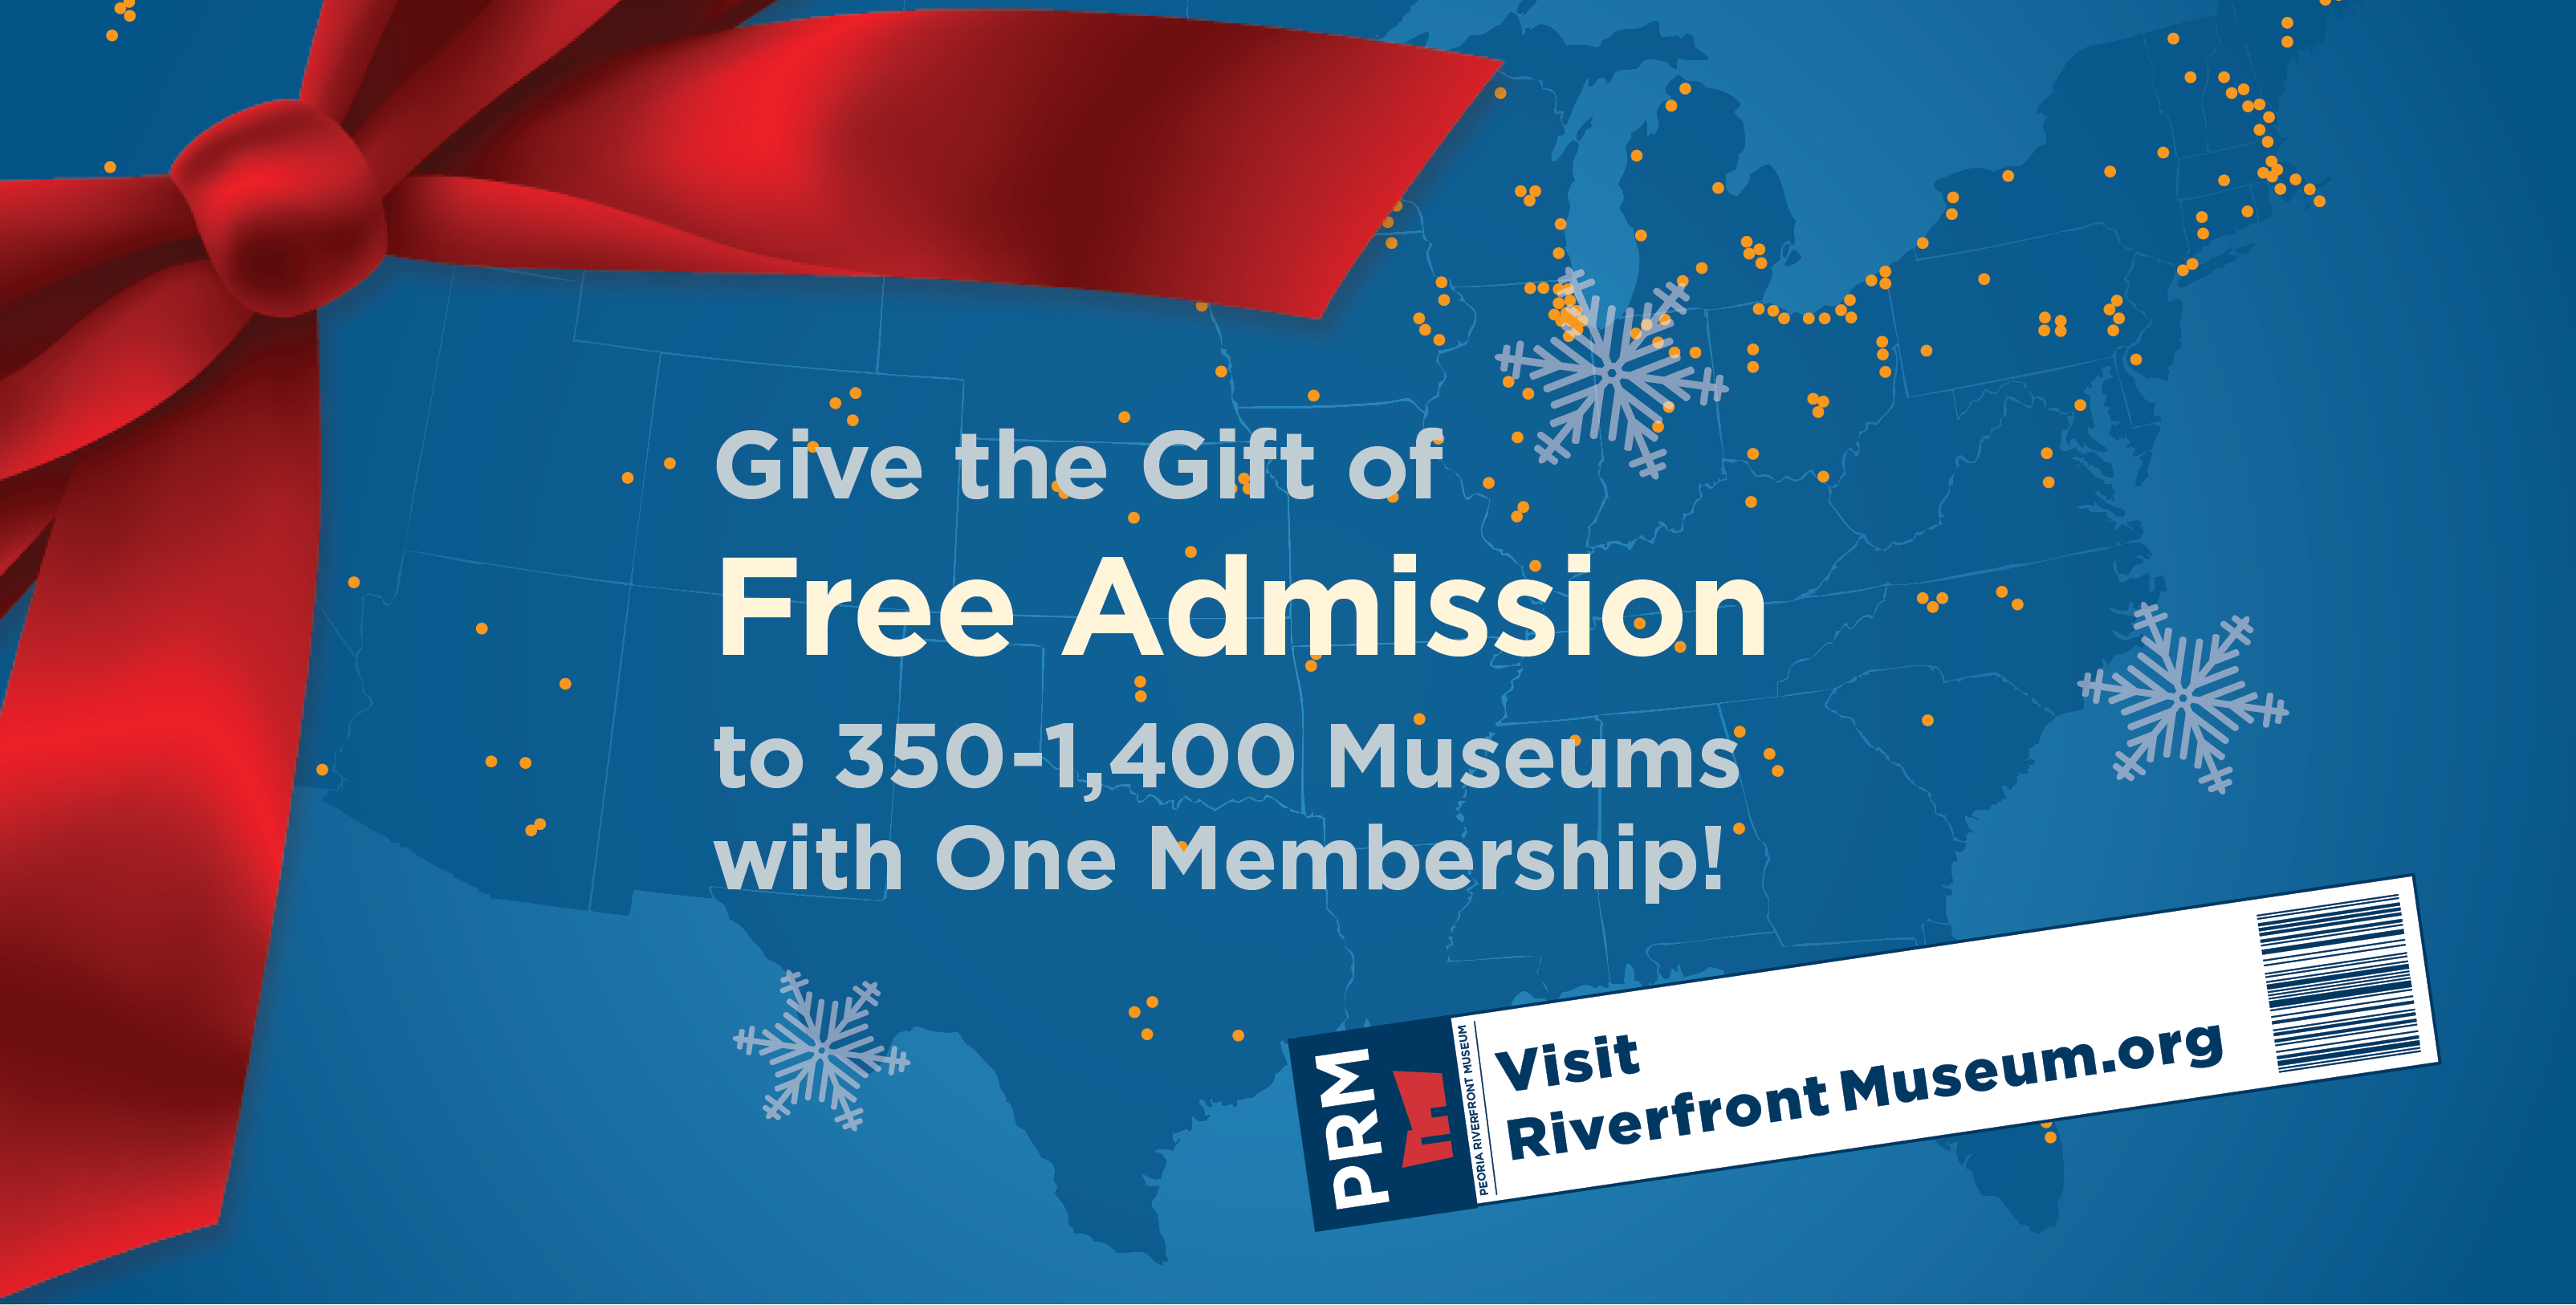 Prm Gift Memberships